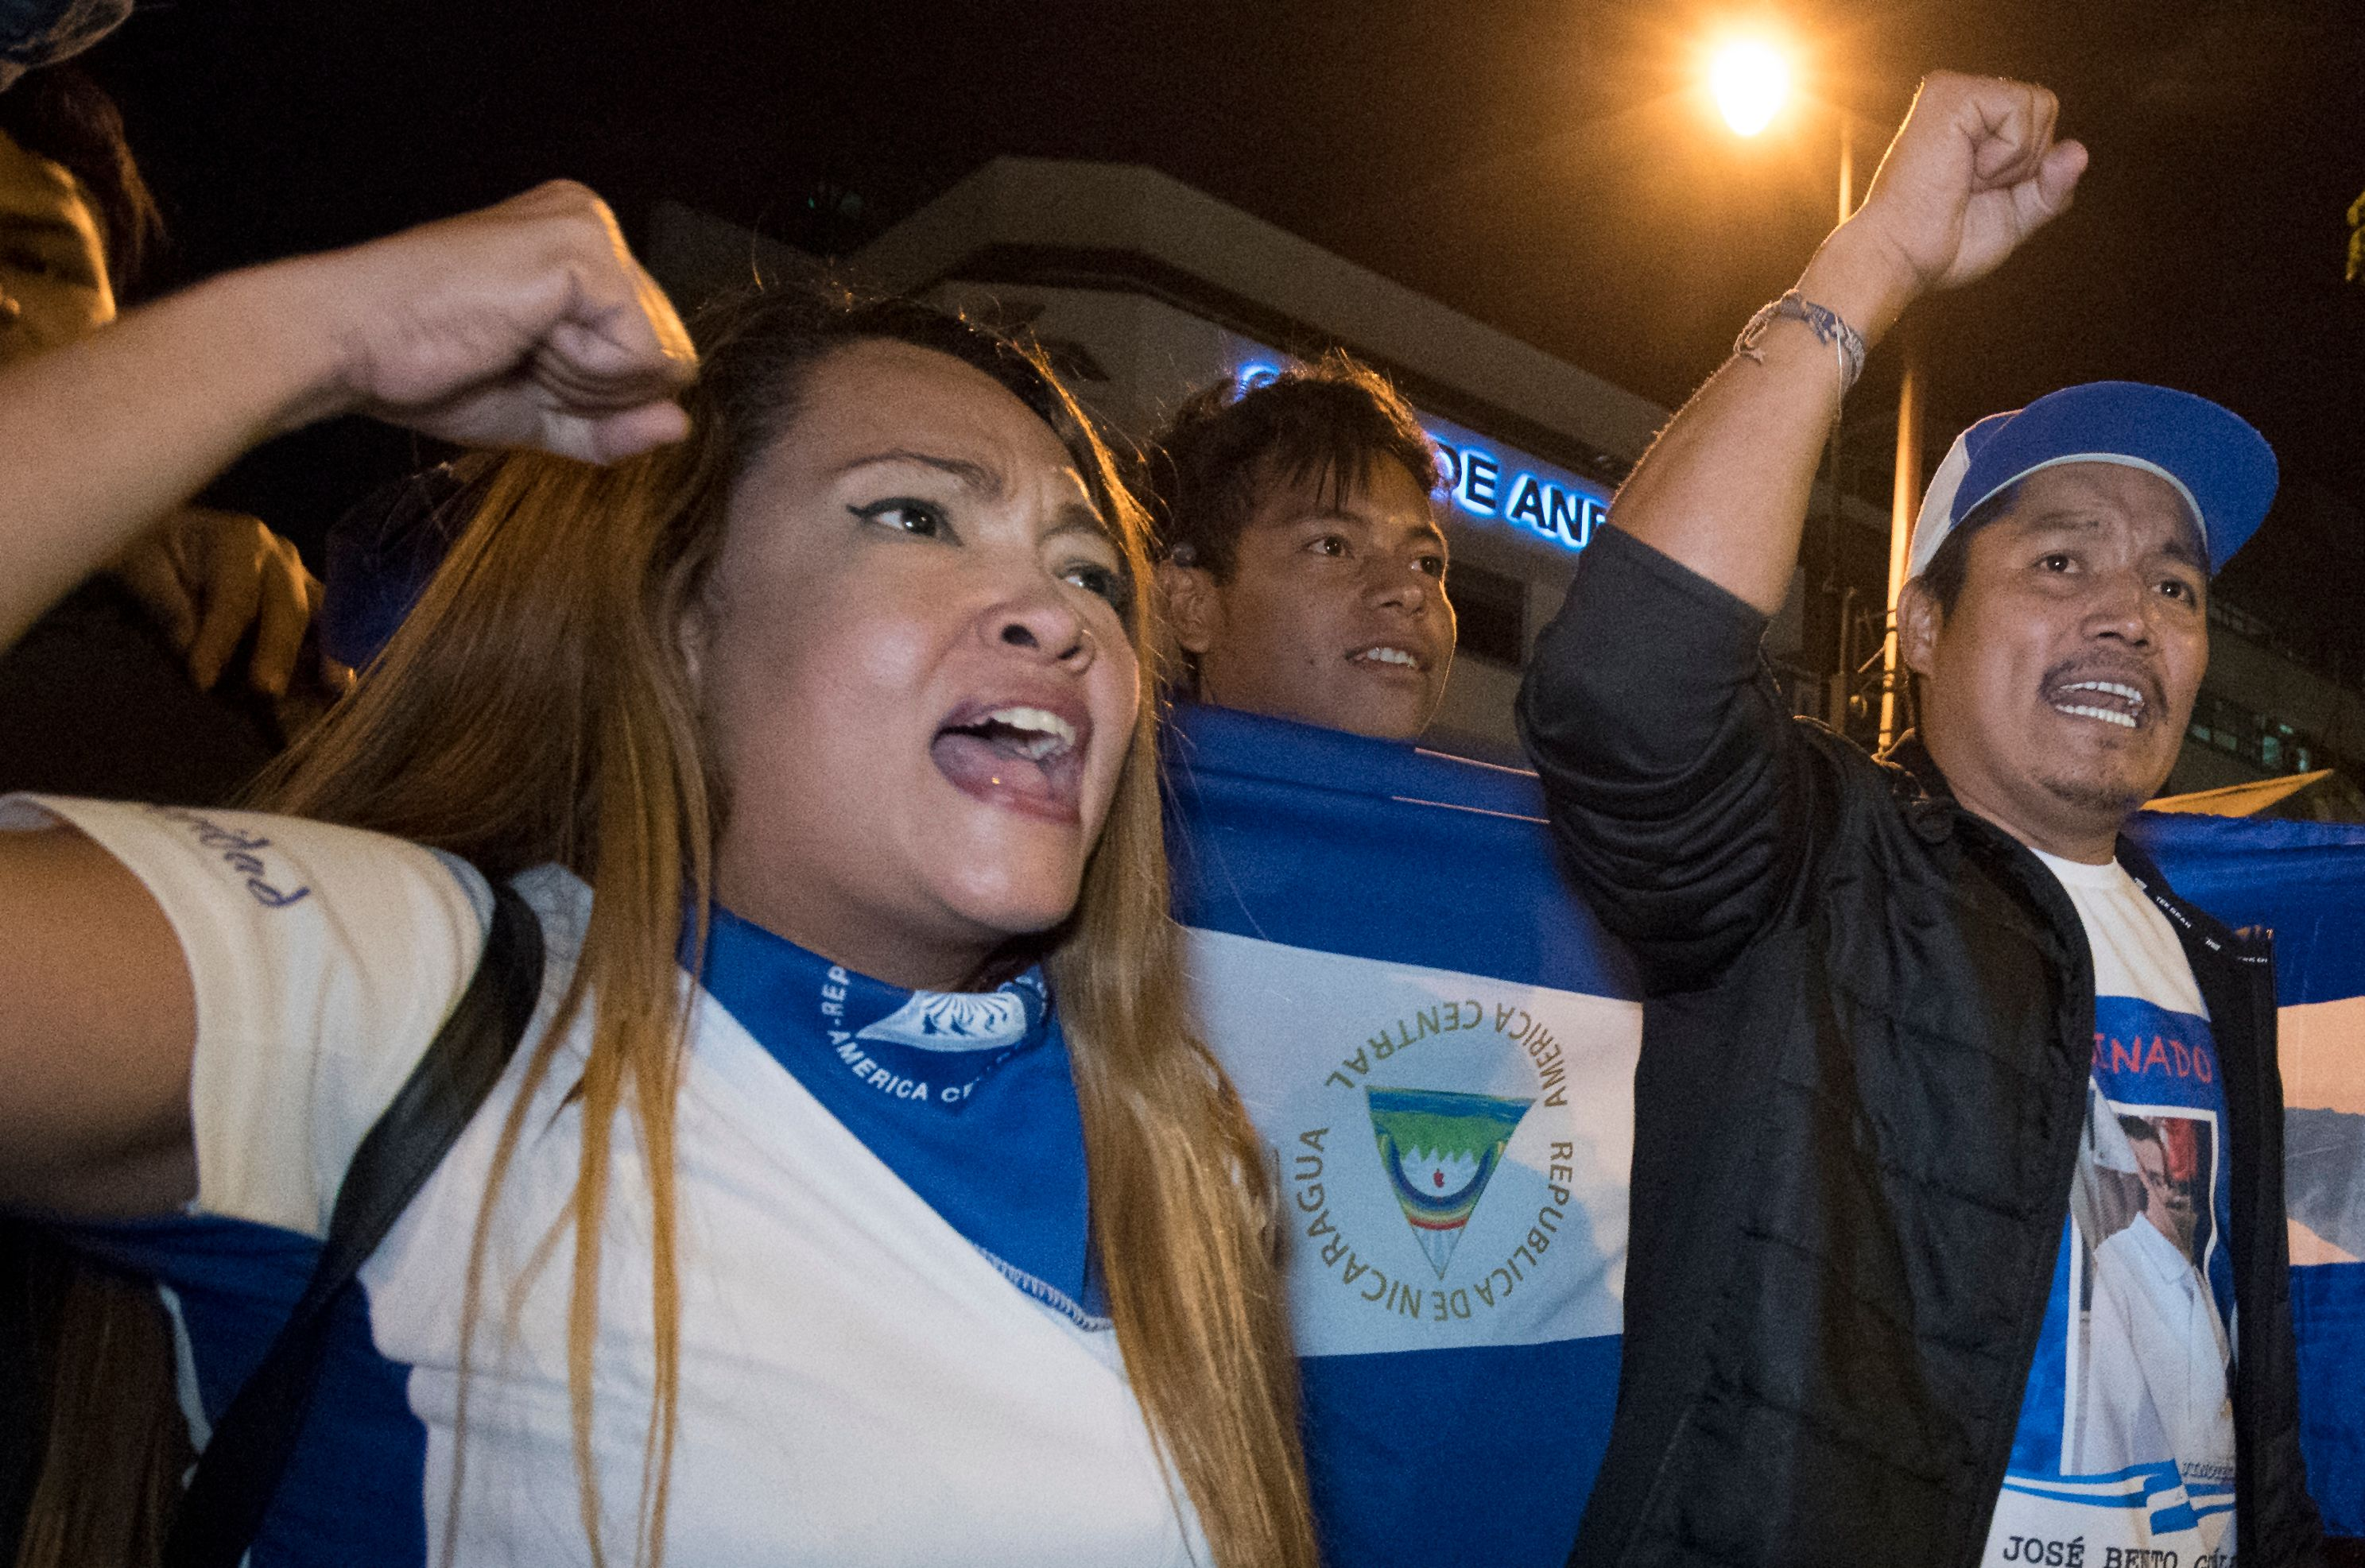 NIcaraguan migrants living in Costa Rica take part in a march to mark International Women's Day in San Jose, Costa Rica on March 8, 2019. (Photo by Ezequiel BECERRA / AFP)